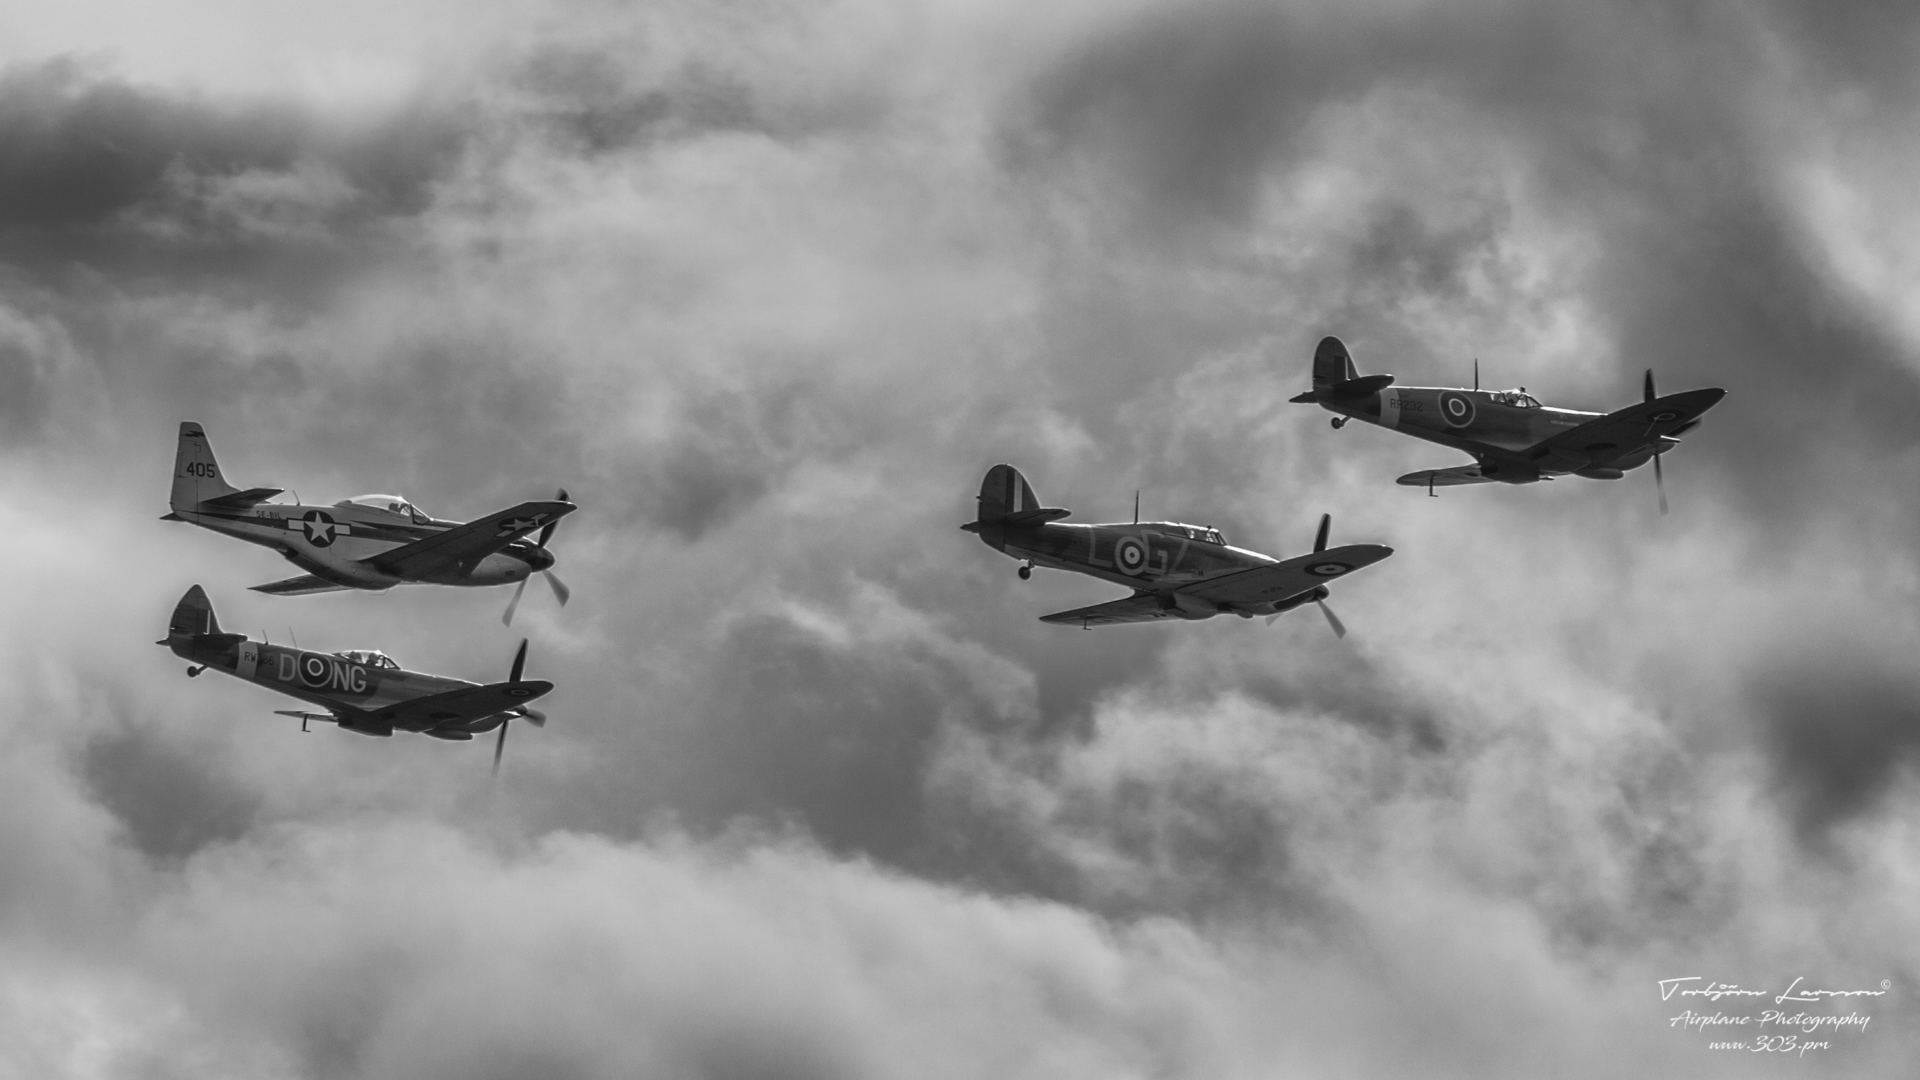 TBE_9502-Classic Warbirds (Vickers Supermarine Spitfire Mk. IX & XVI - North Amercian P-51D Mustang & Hawker Hurricane Mk1)